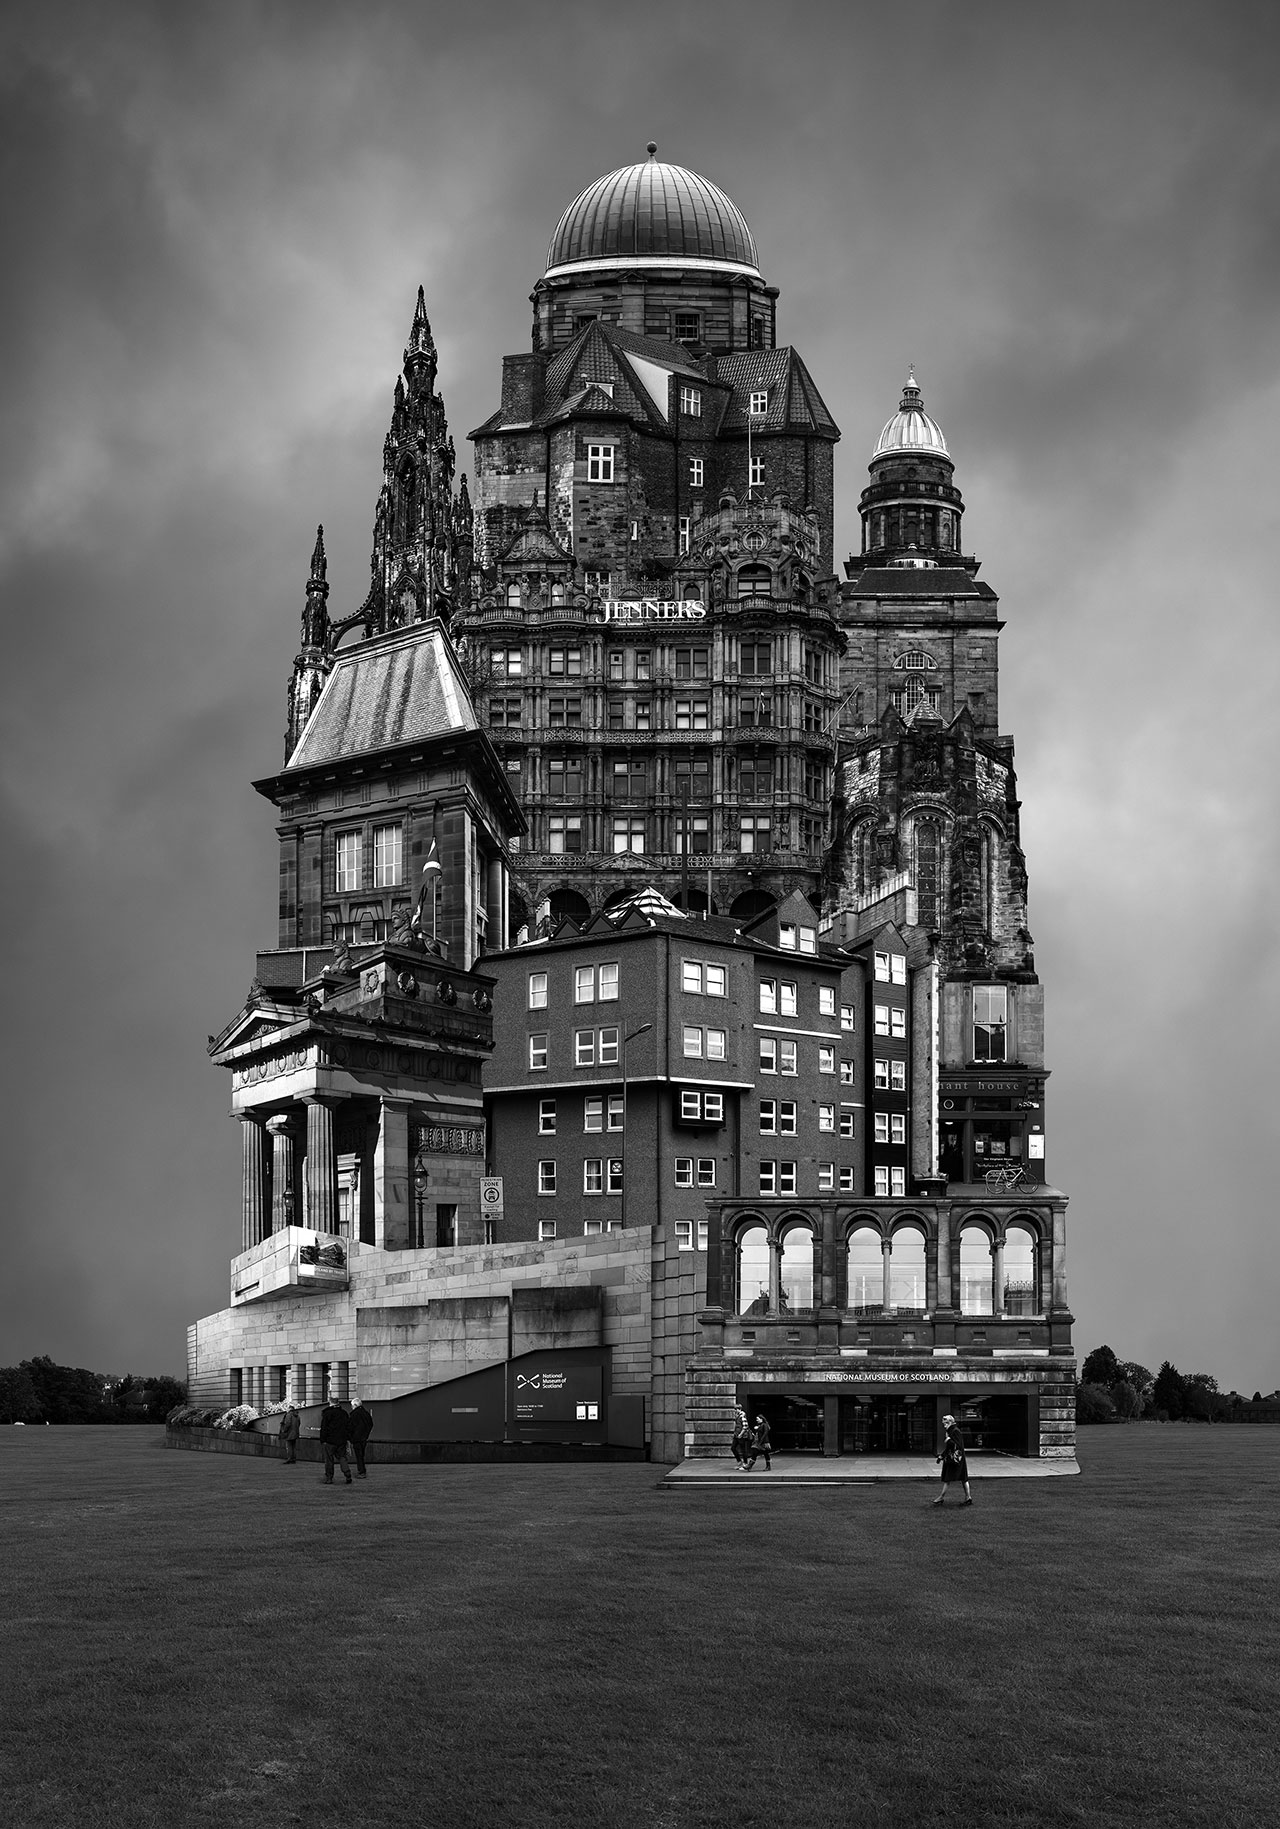 Beomsik Won,Archisculpture 034, 2015. Archival pigment print, 100x70 or 171x120cm.